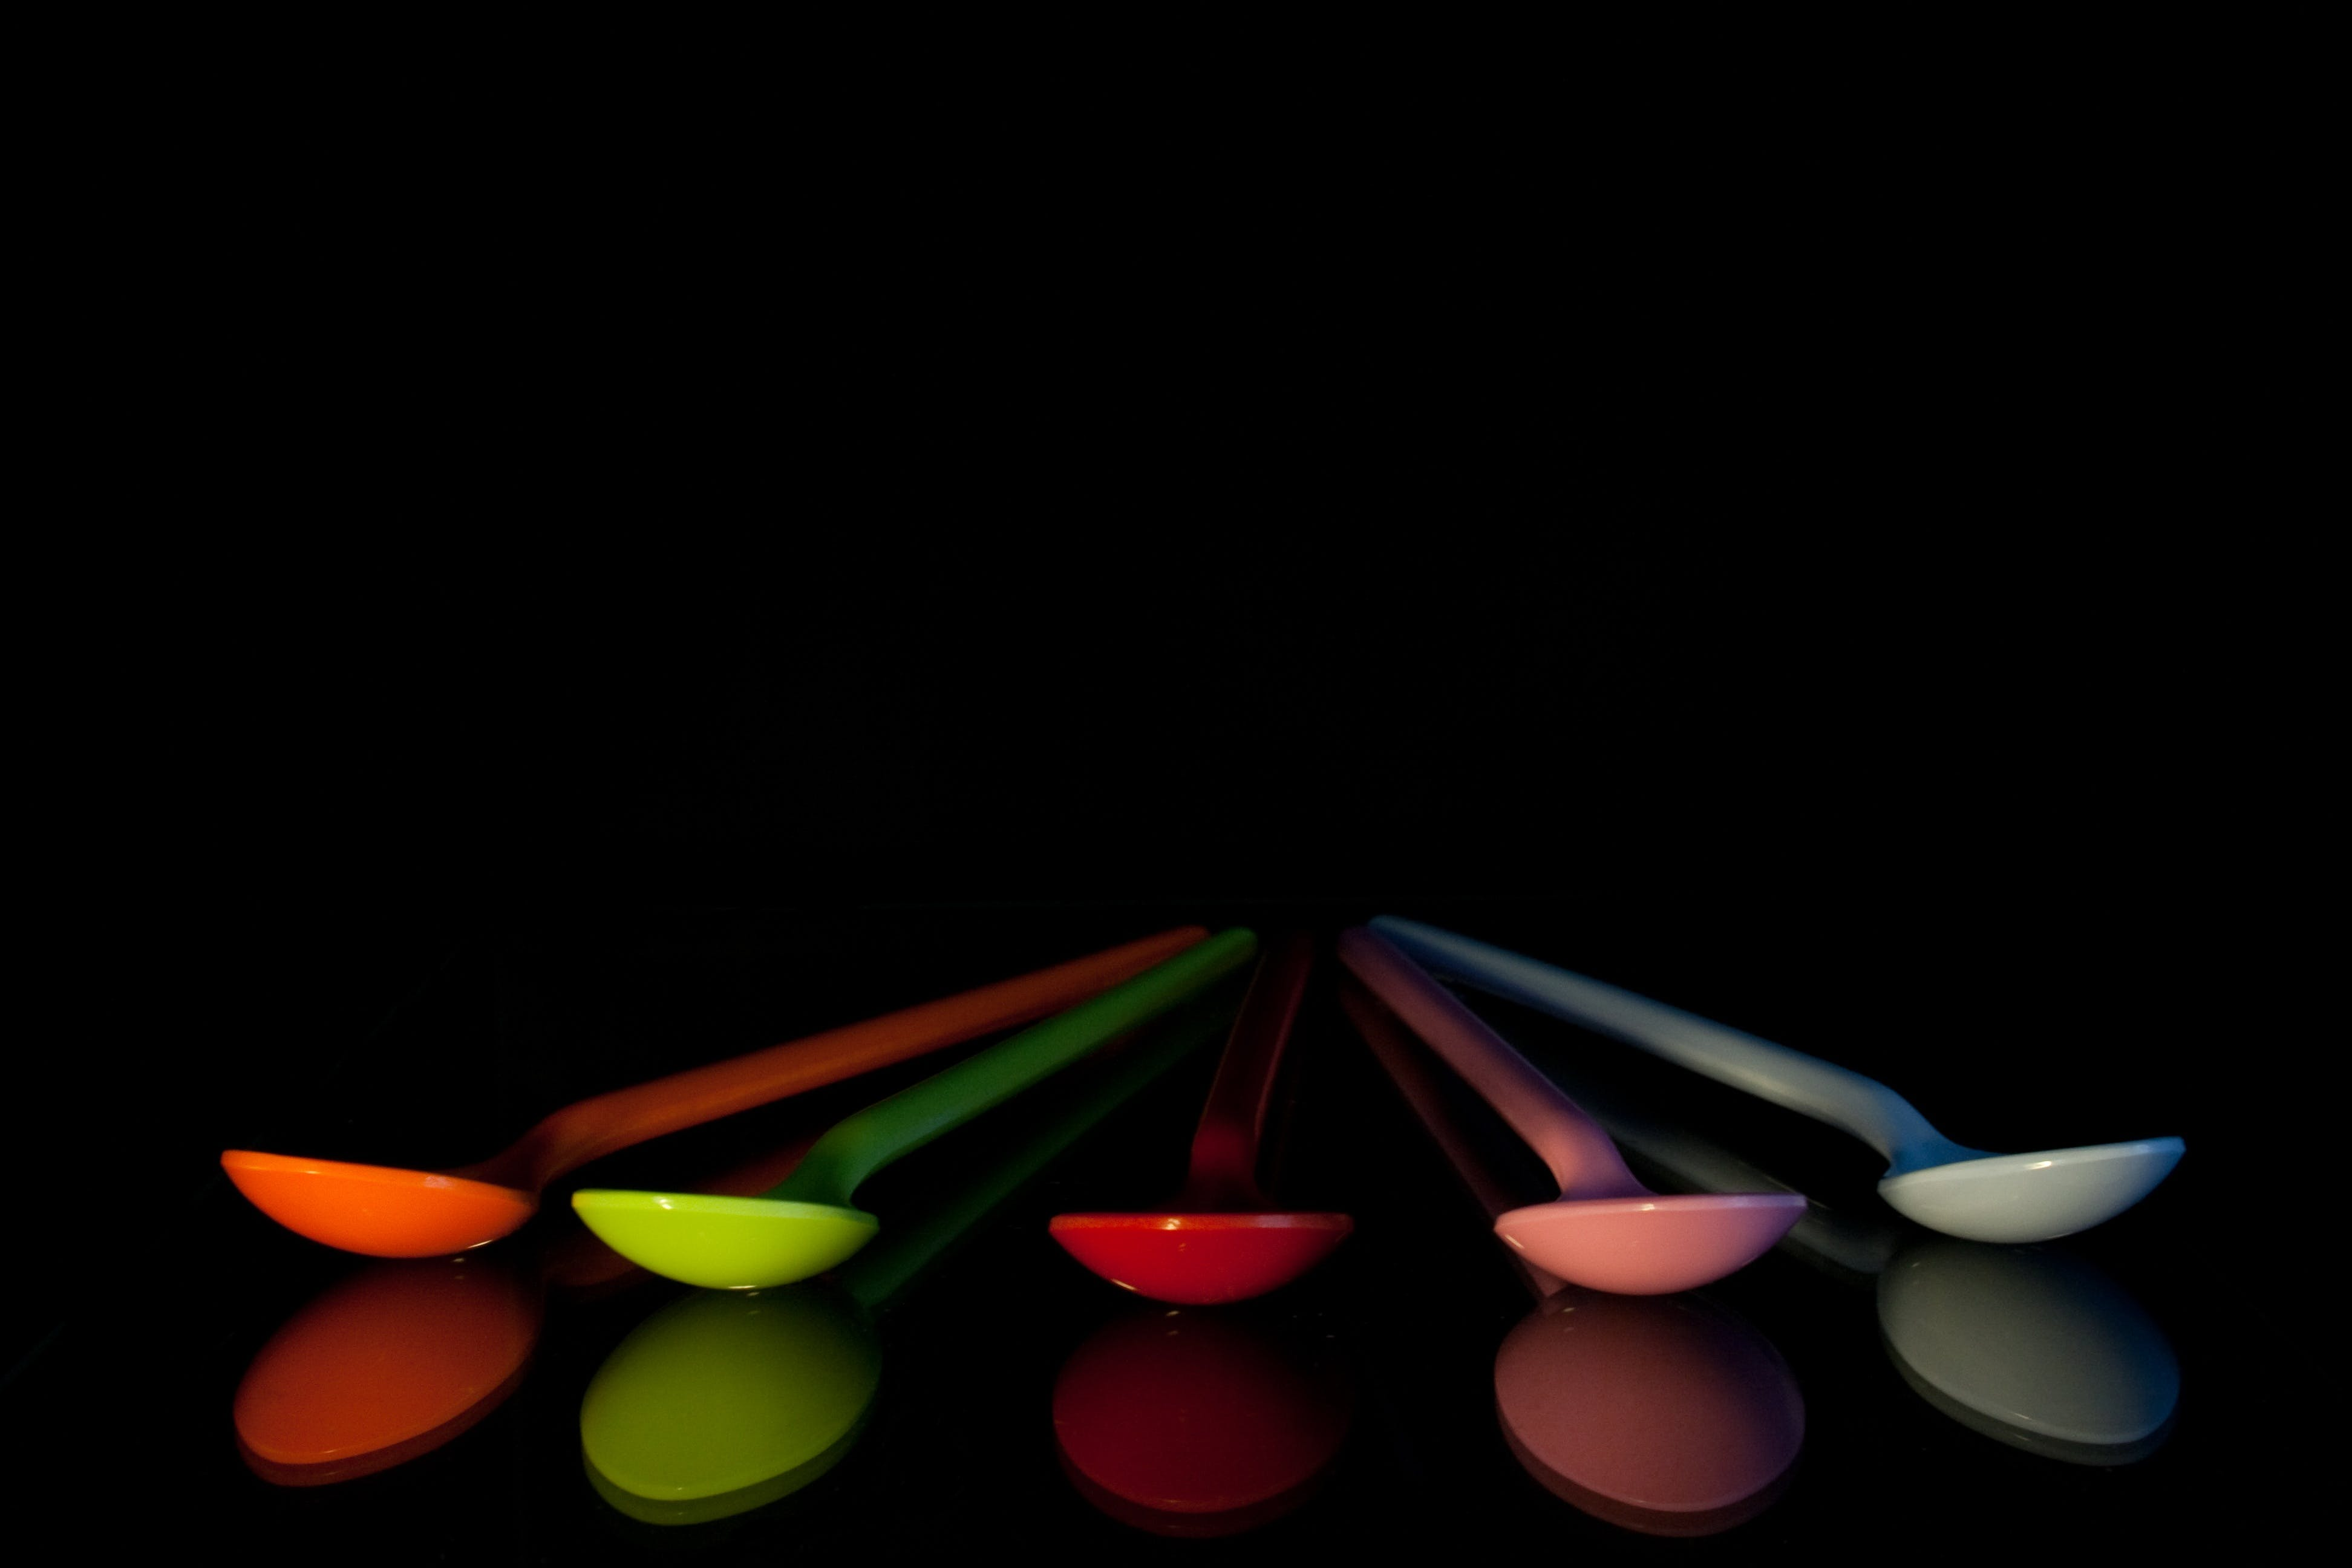 Five Assorted-color Spoons on Black Surface